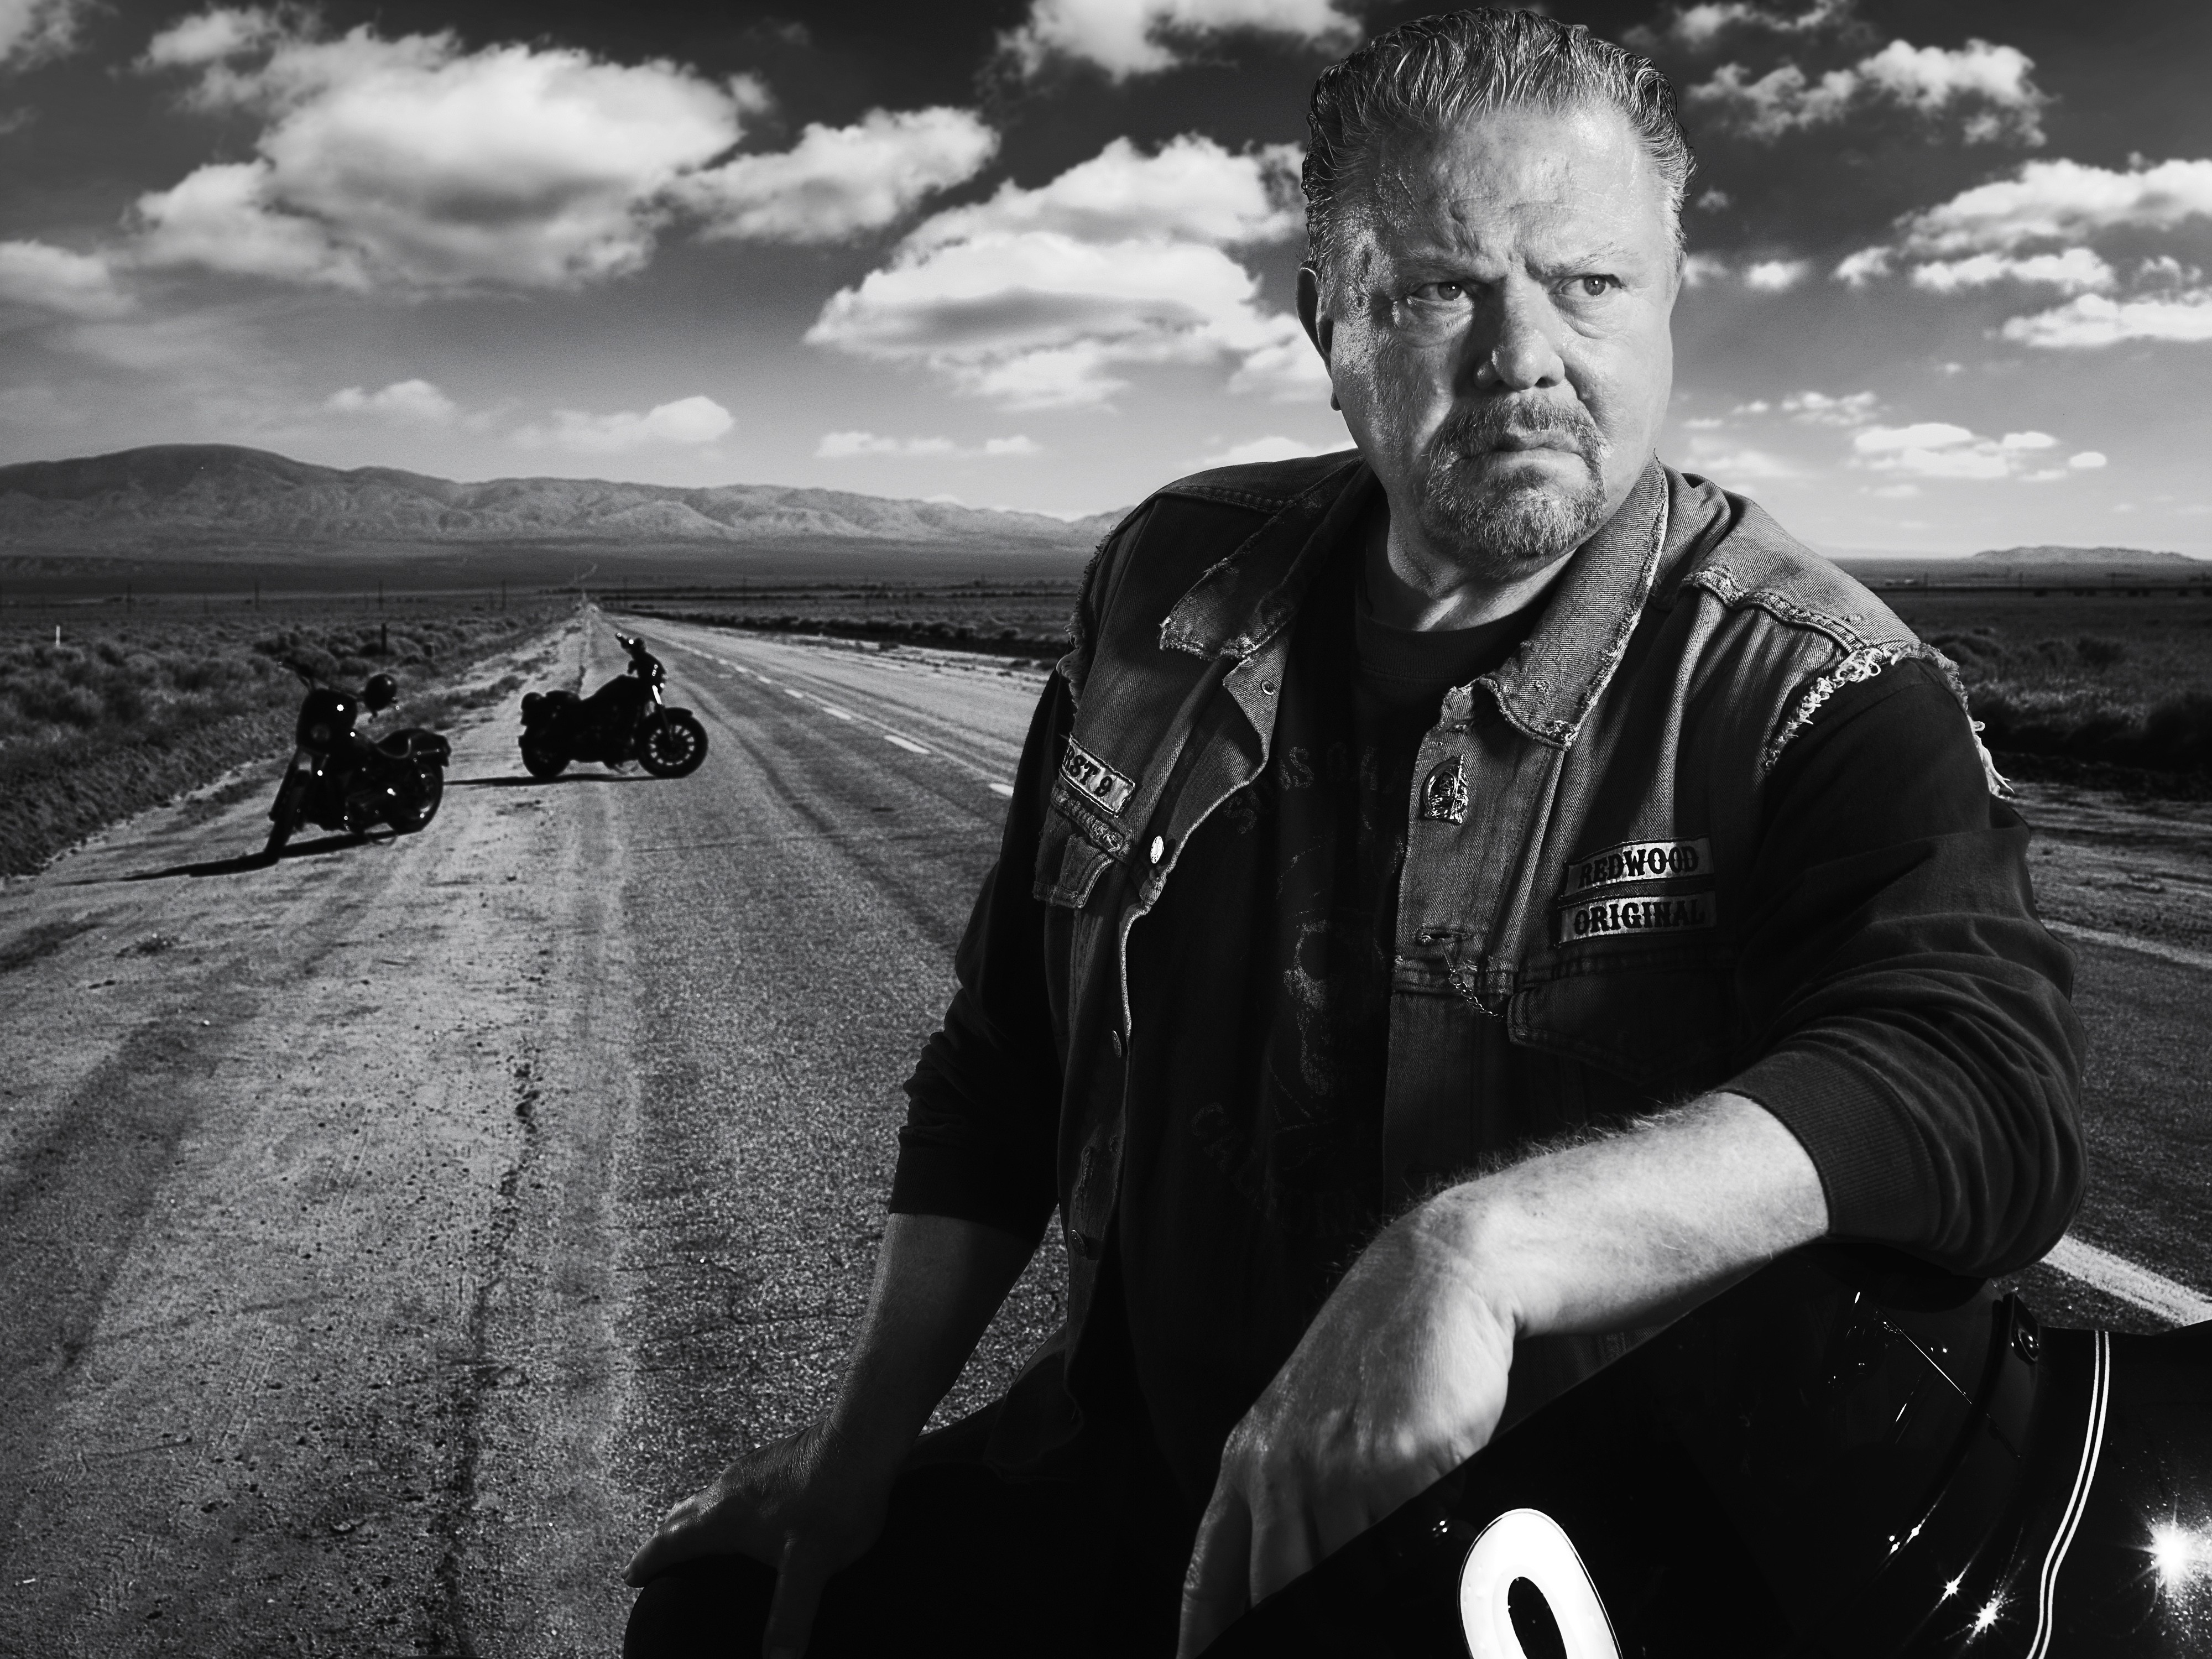 Mountains sons of anarchy HD Wallpaper